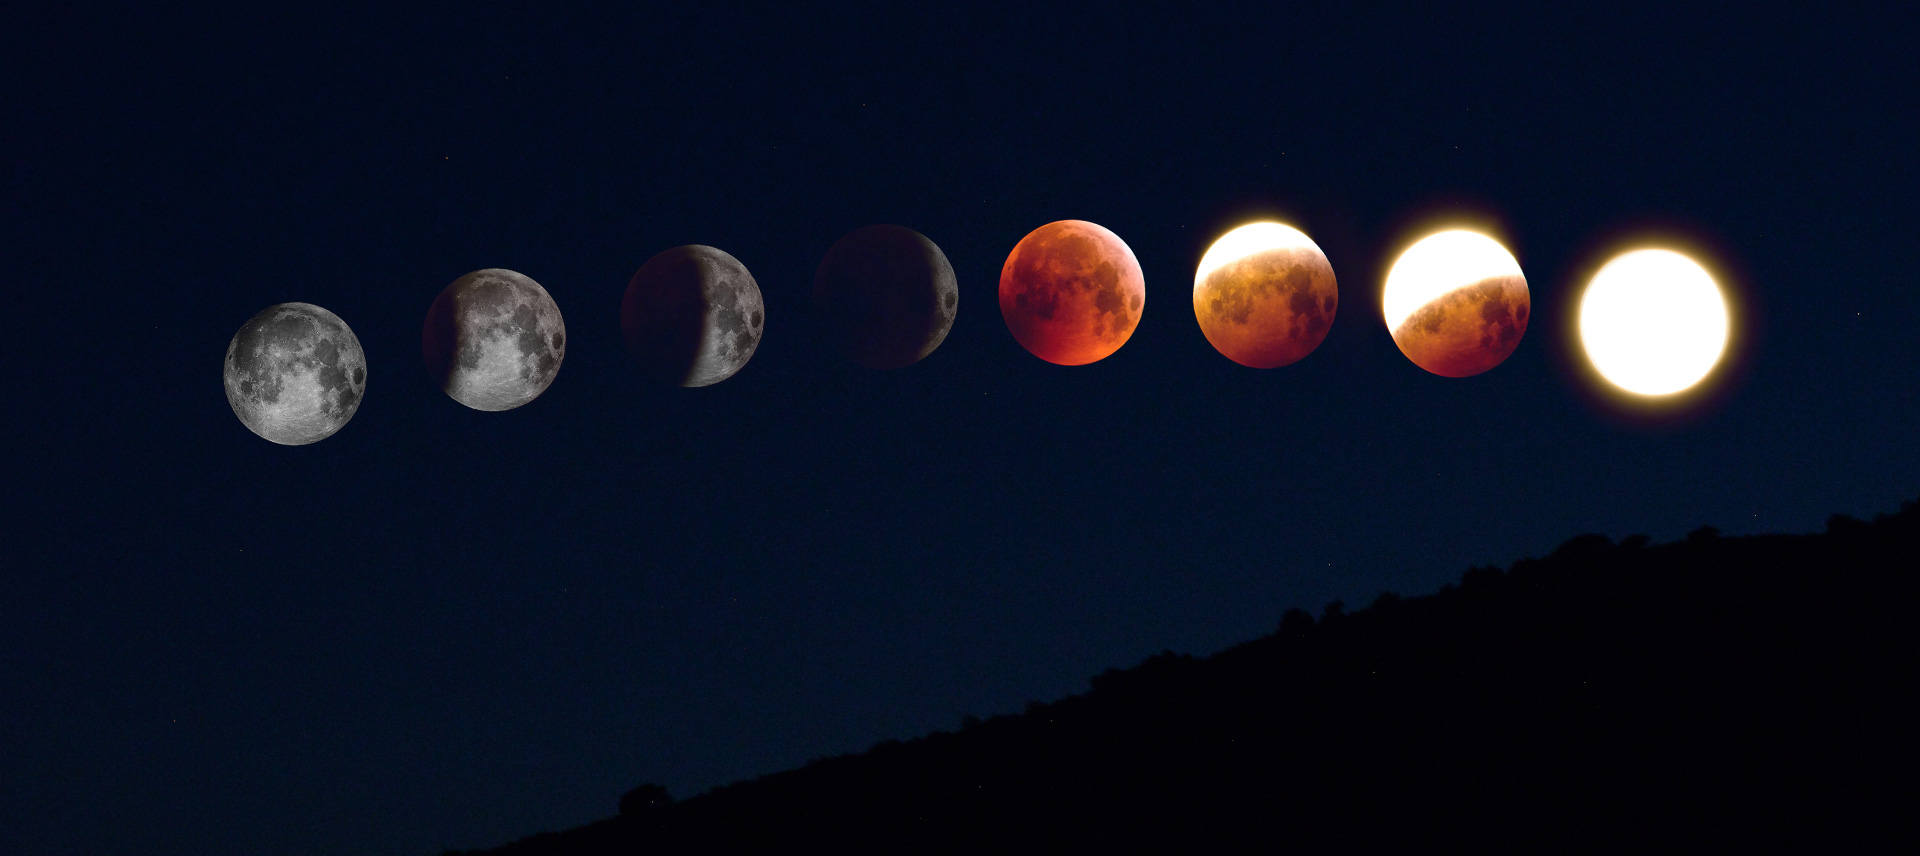 https://primeastrology.com/wp-content/uploads/2019/12/moon-eclipse.jpeg